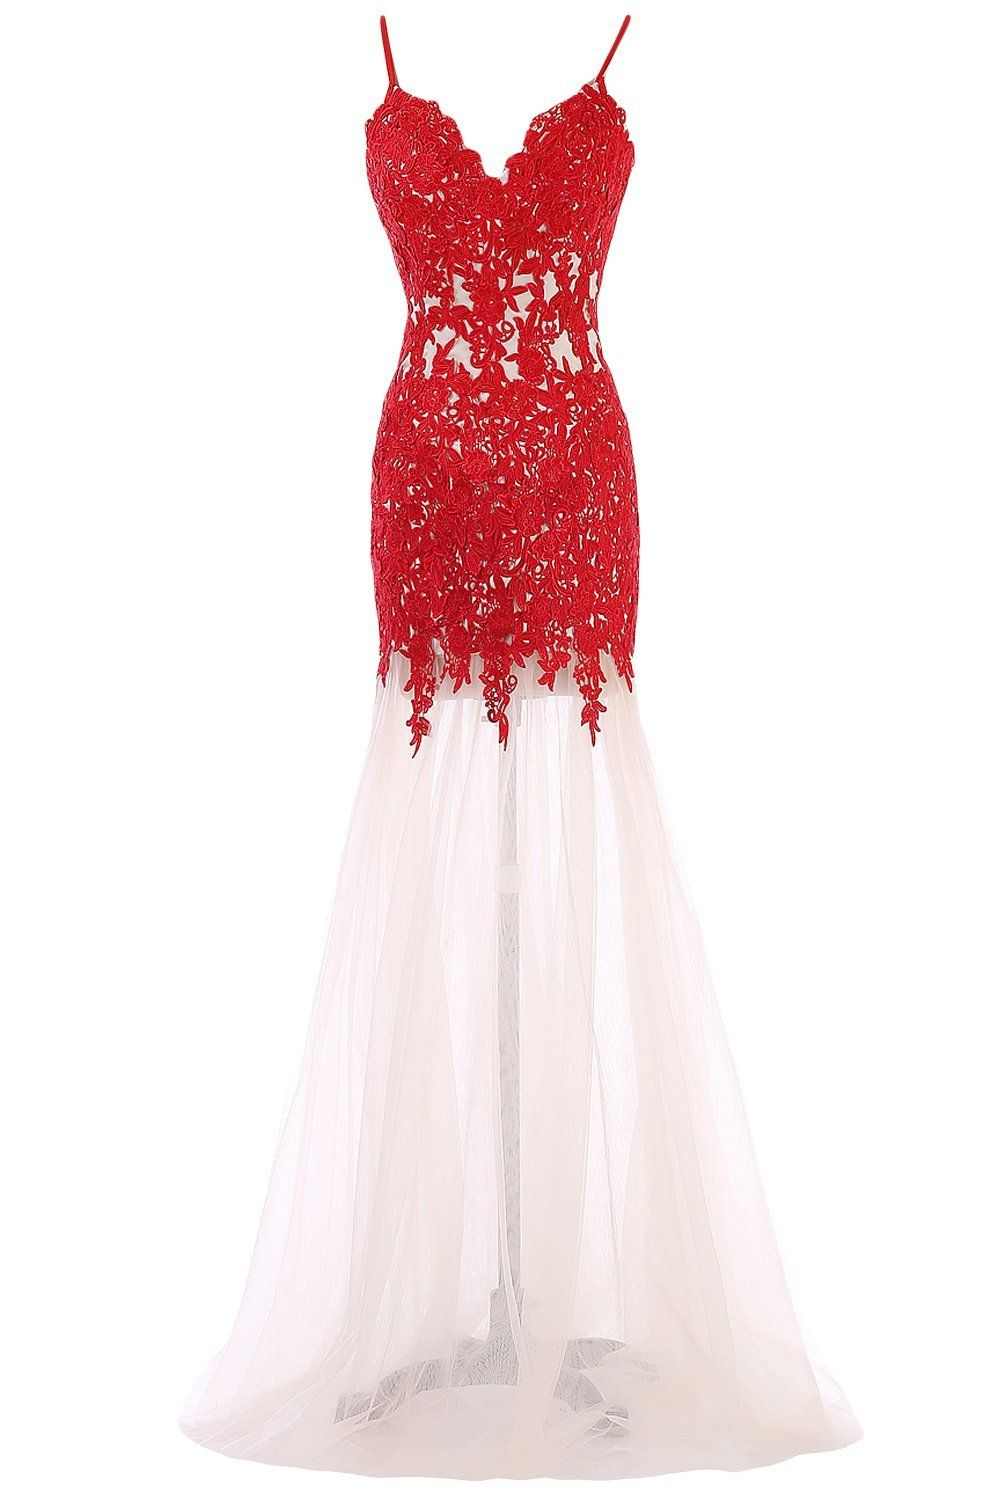 Amazon.com: Sunvary Champagne and Red Mermaid Lace Prom Evening Dresses Bridesmaid Gowns: Clothing